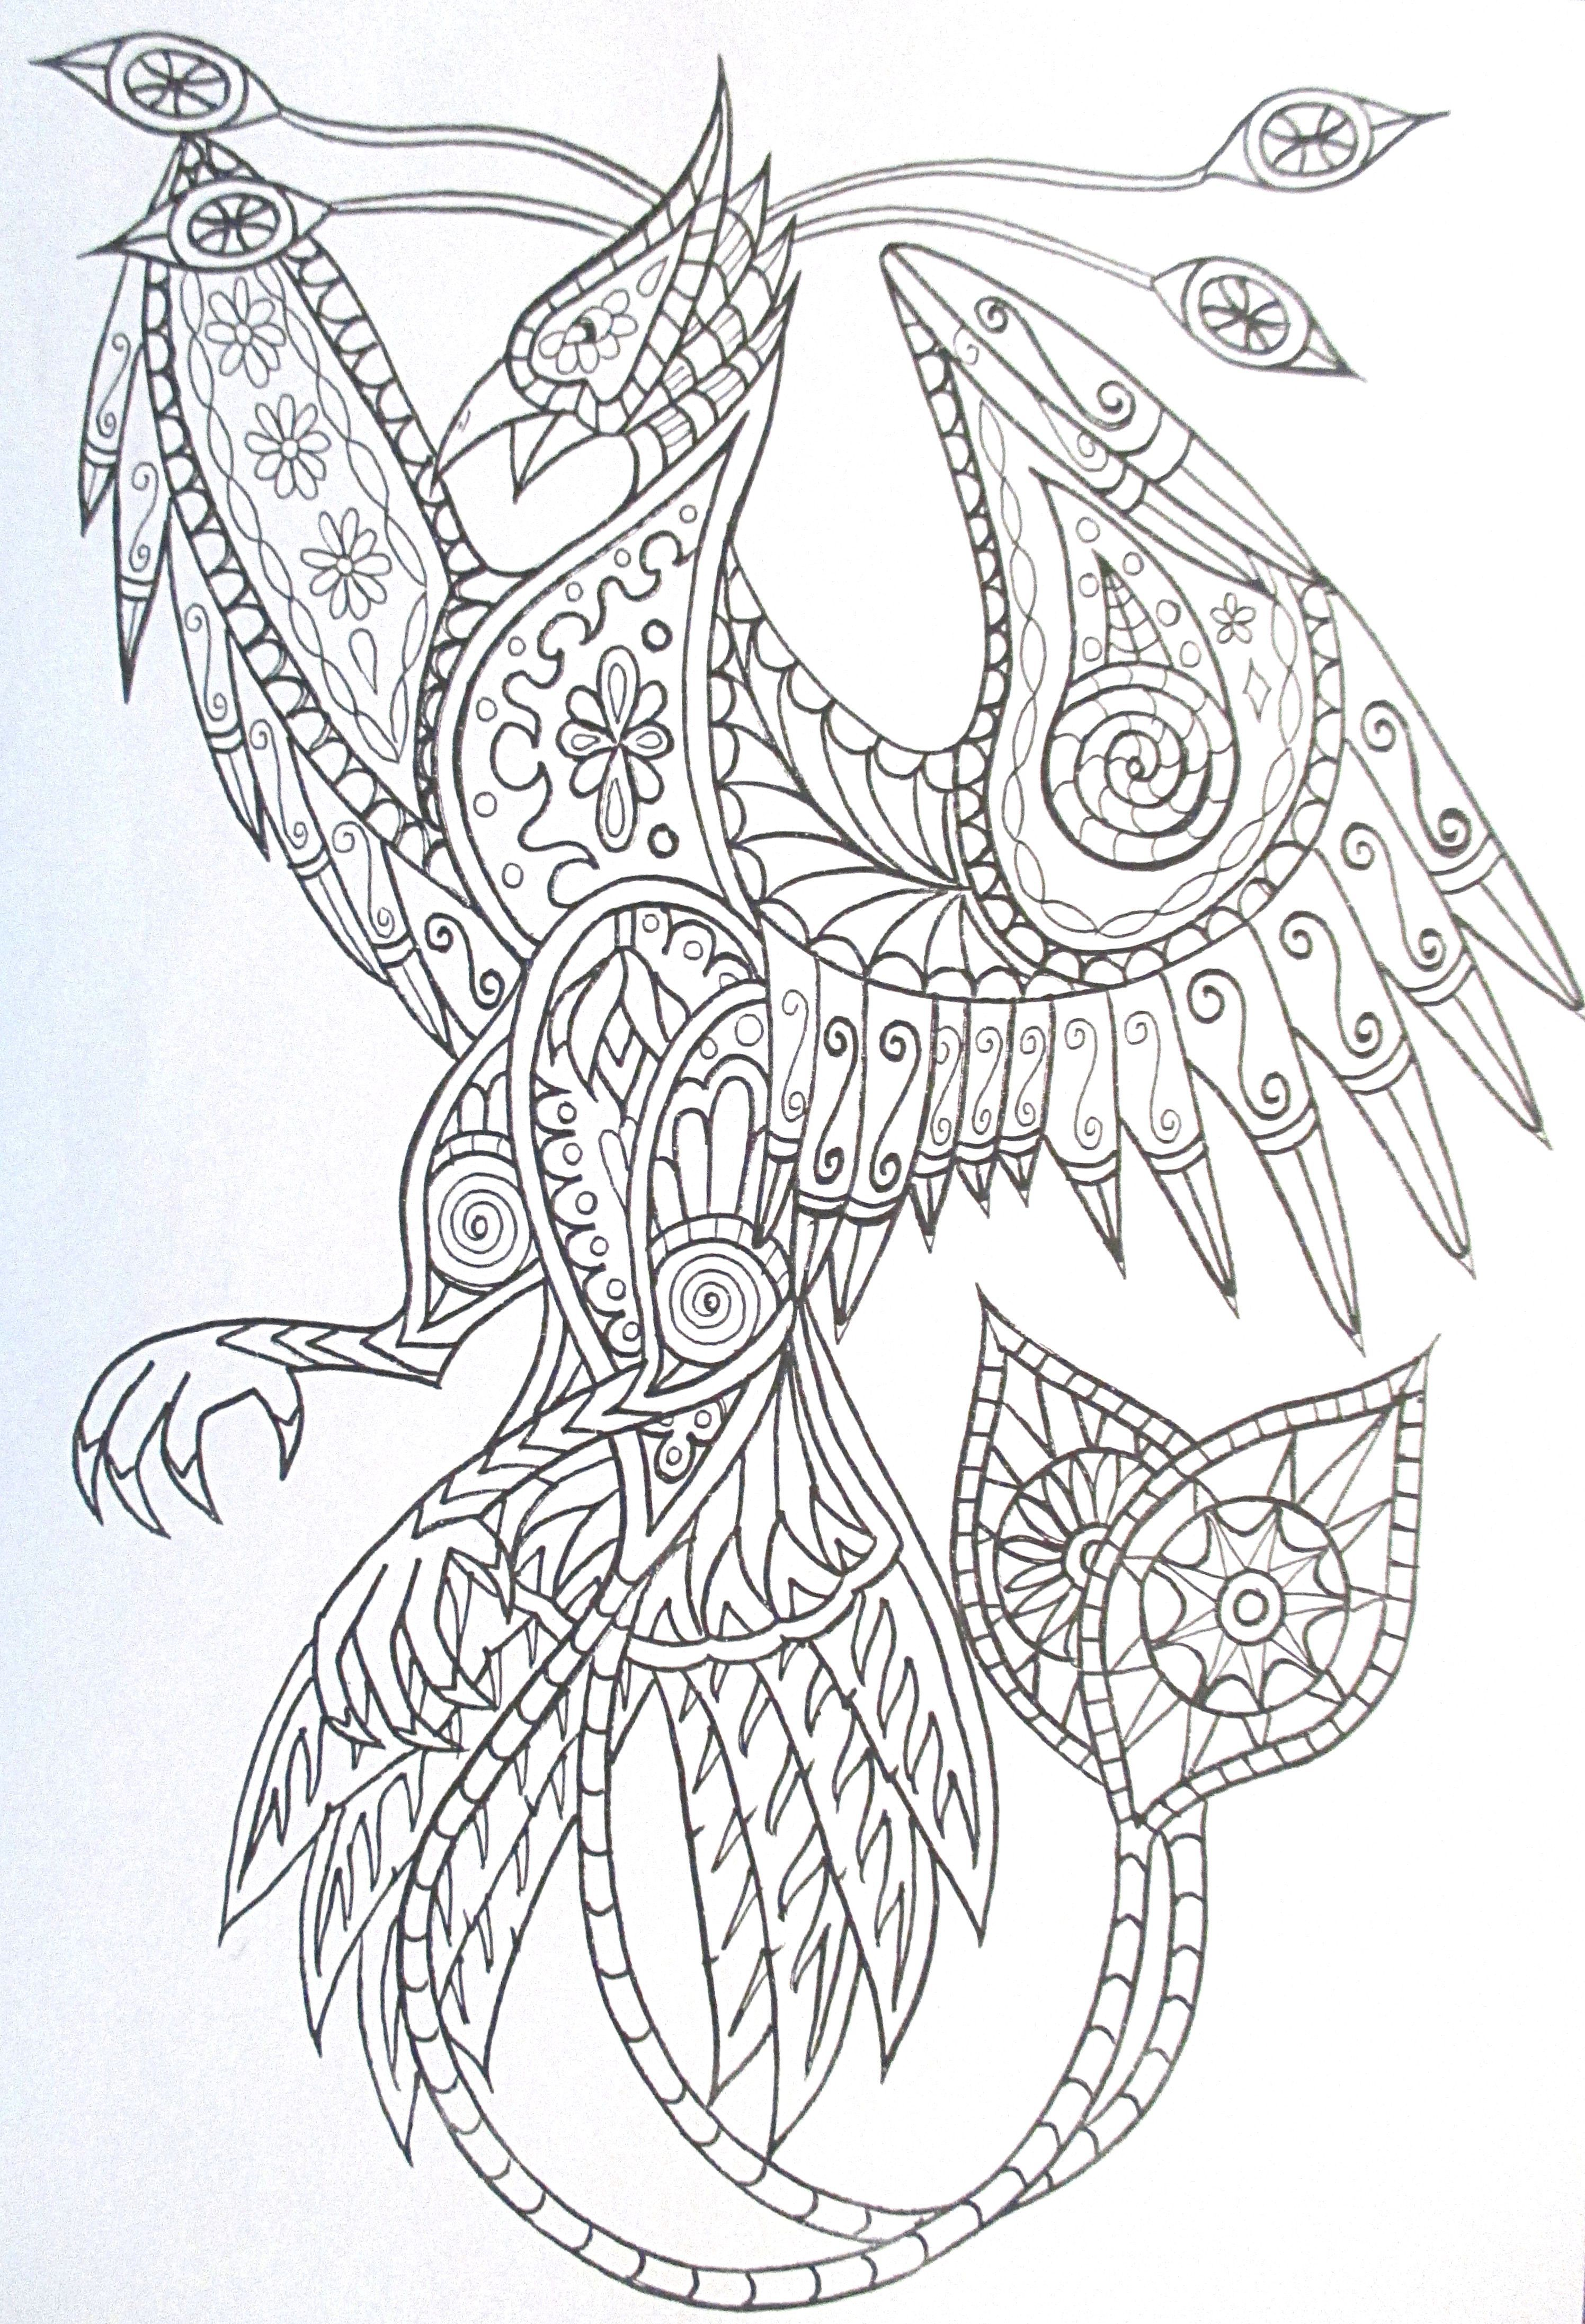 Phoenix Tribal Art Drawing Printable Coloring Page Steampunk Coloring Abstract Coloring Pages Coloring Pages